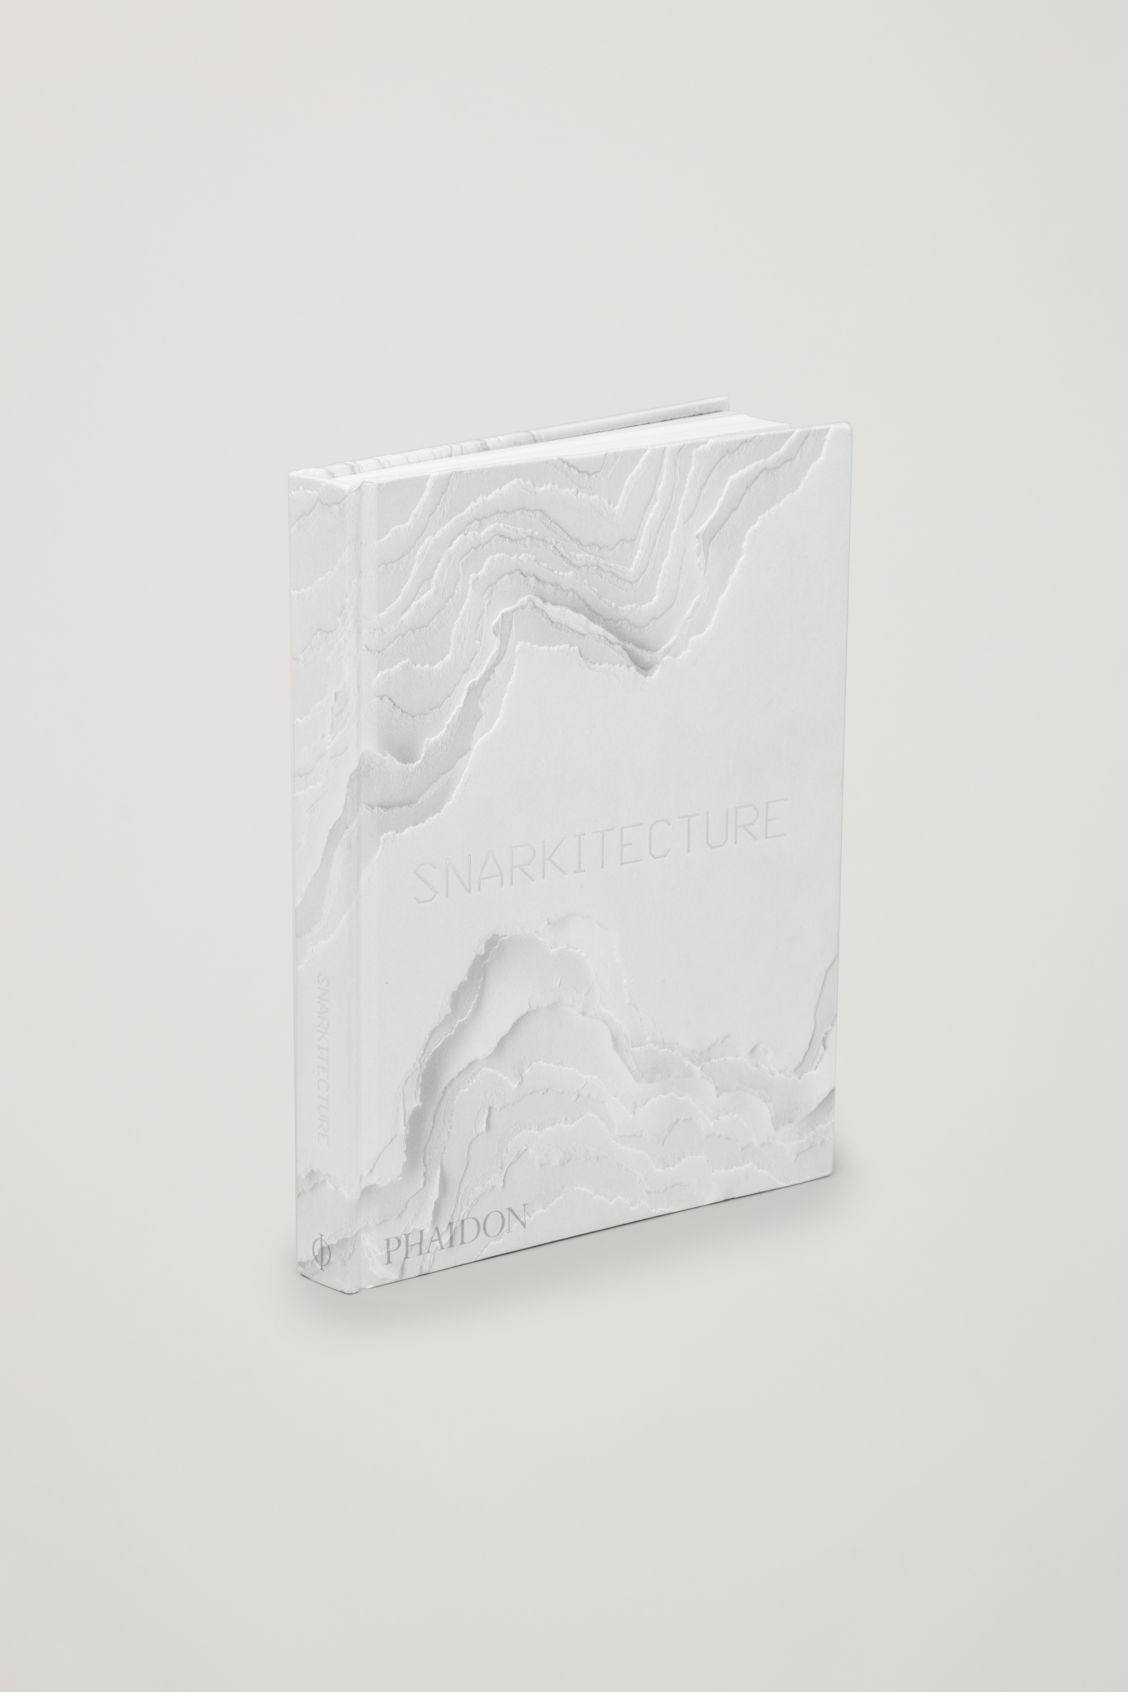 Side image of Cos snarkitecture in white